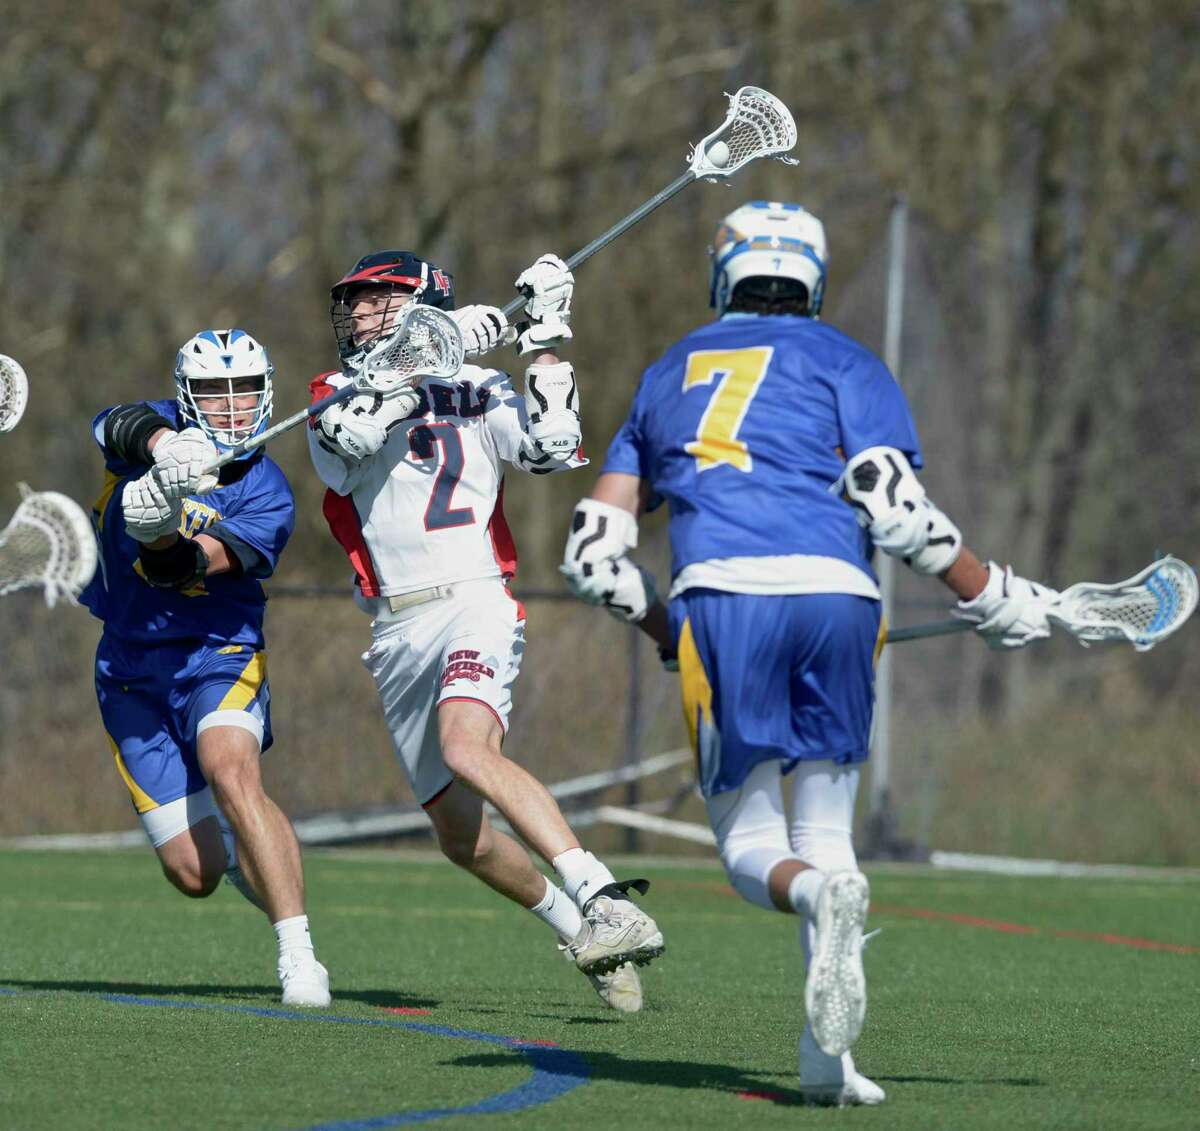 New Fairfield's Nathan Alviti (2) shoots while being defended by Brookfield's Ryan Sanborn (19) in the boys lacrosse game between Brookfield and New Fairfield high schools. Tuesday, April 13, 2021, at New Fairfield High School, New Fairfield, Conn.